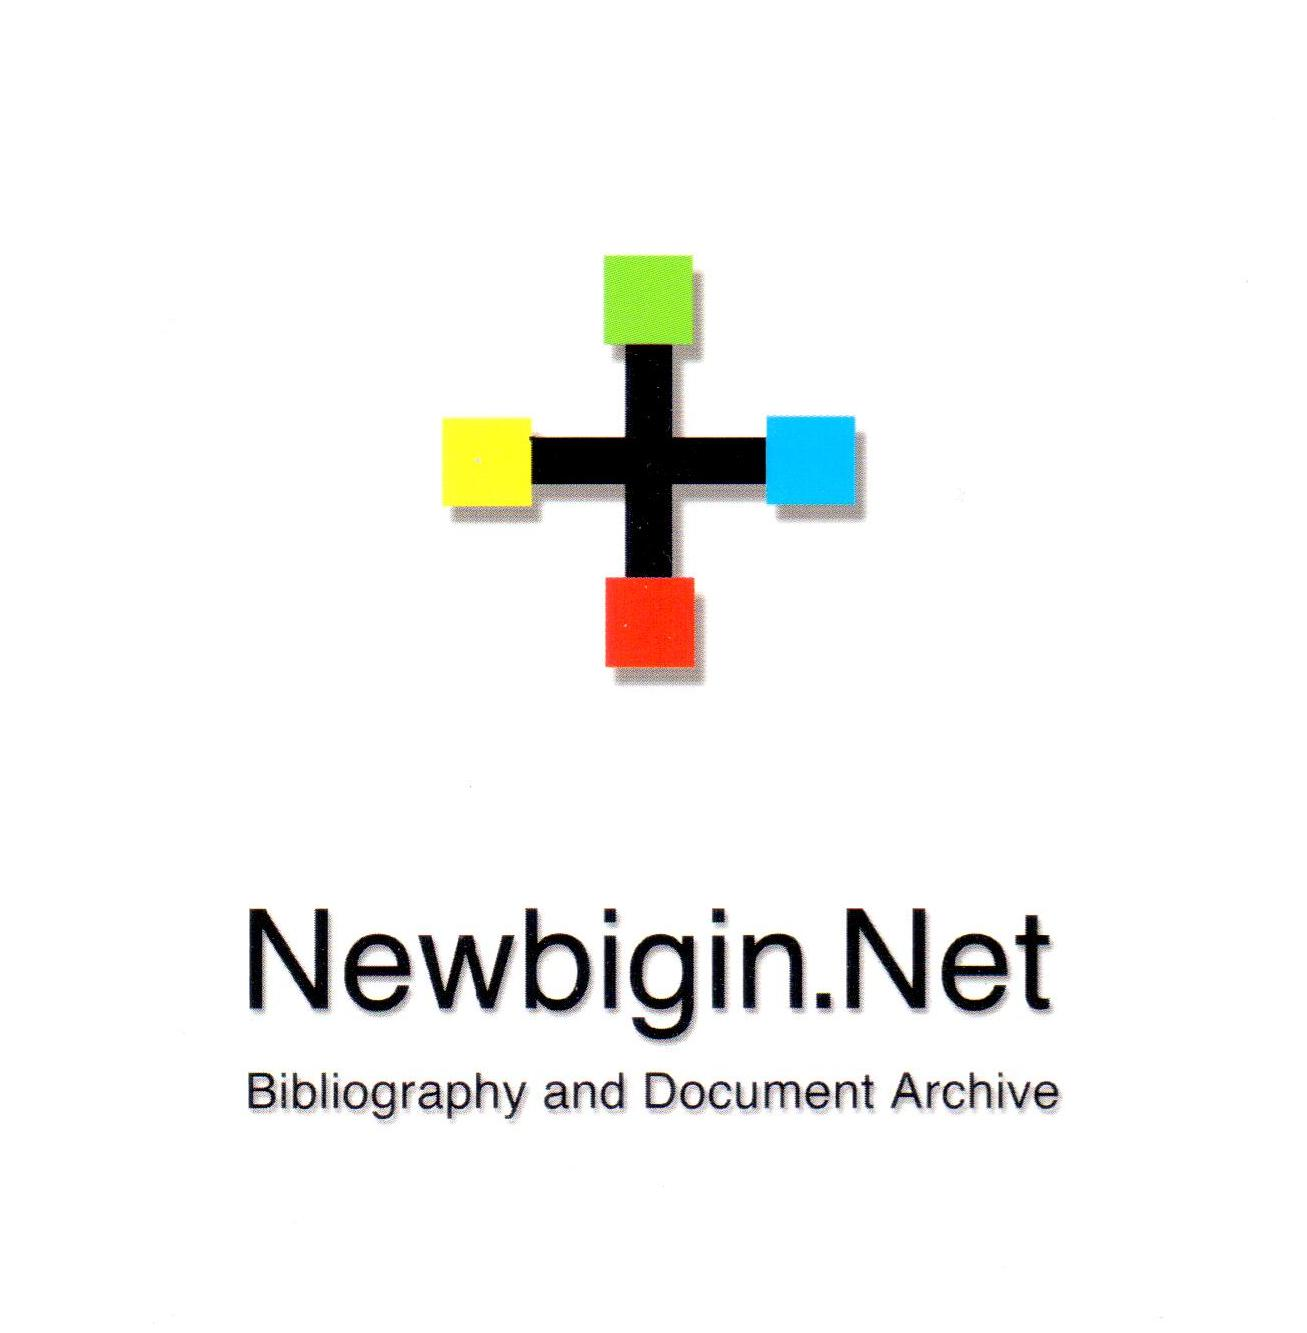 Newbigin.net